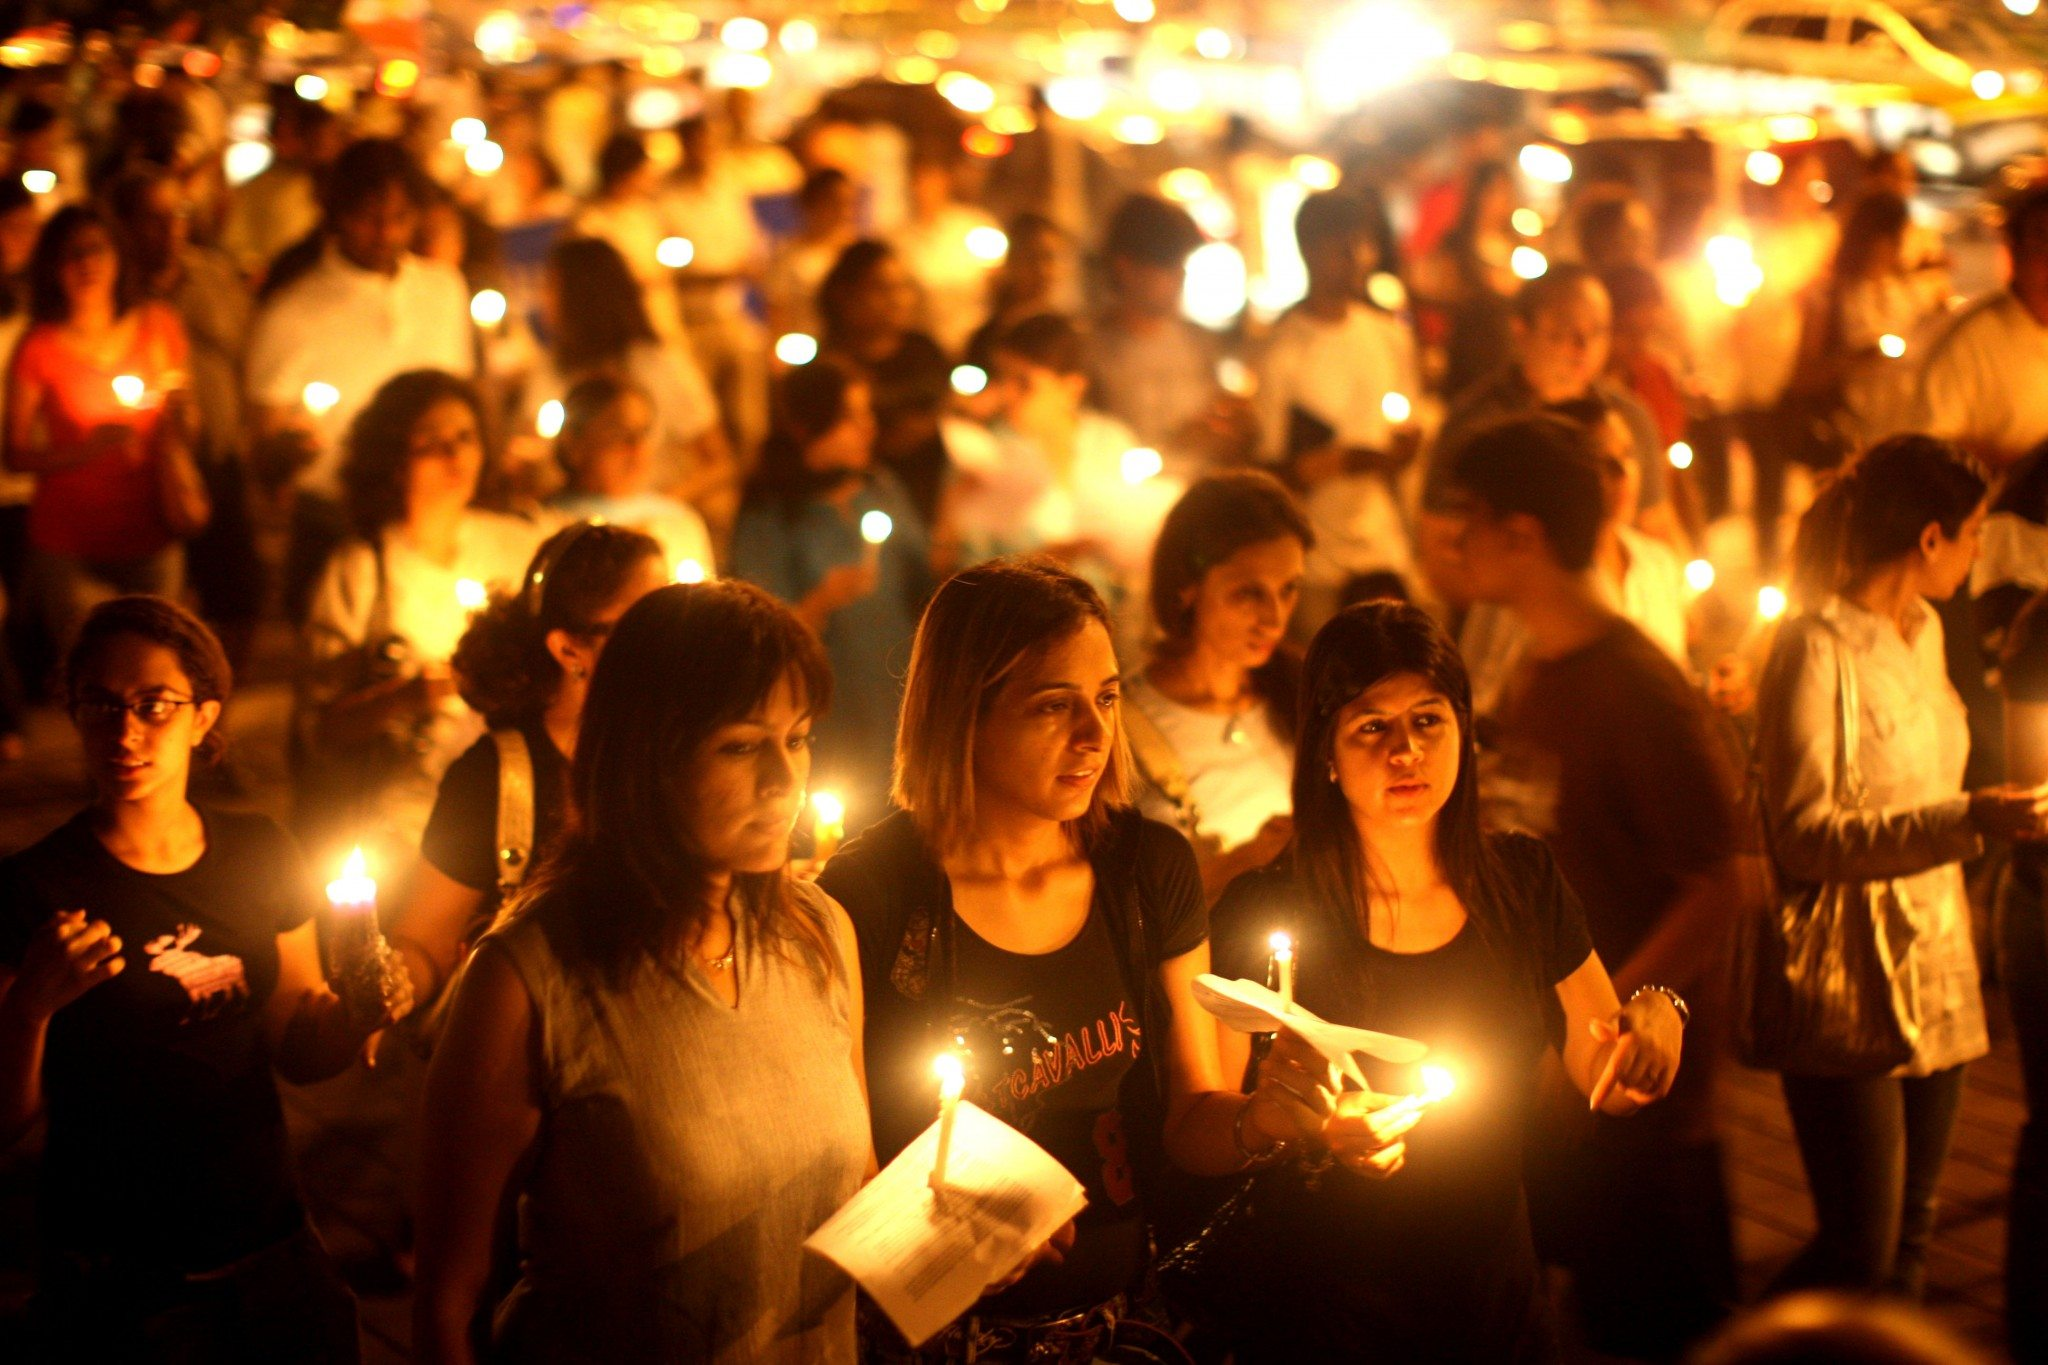 MUMBAI (BOMBAY), INDIA - NOVEMBER 30: (ISRAEL OUT) Mumbai Residents walk with candles in the street near The Oberoi Hotel during a demonstration against the recent terror attacks in the city on November 30, 2008 in Mumbai, India. Indian Home Minister Shivraj Patil today submitted his resignation claiming 'moral responsibility' following the Mumbai terror attacks. Following the multiple coordinated terrorist attacks that began on November 26 and targeted a railway station, two hotels, a hospital and cafe as well as the Jewish centre, around 174 people have died, including at least 22 foreigners, and around 295 people injured. Two NSG commandos lost their lives and eight were injured during the counter-terrorist operations. (Photo by Uriel Sinai/Getty Images)